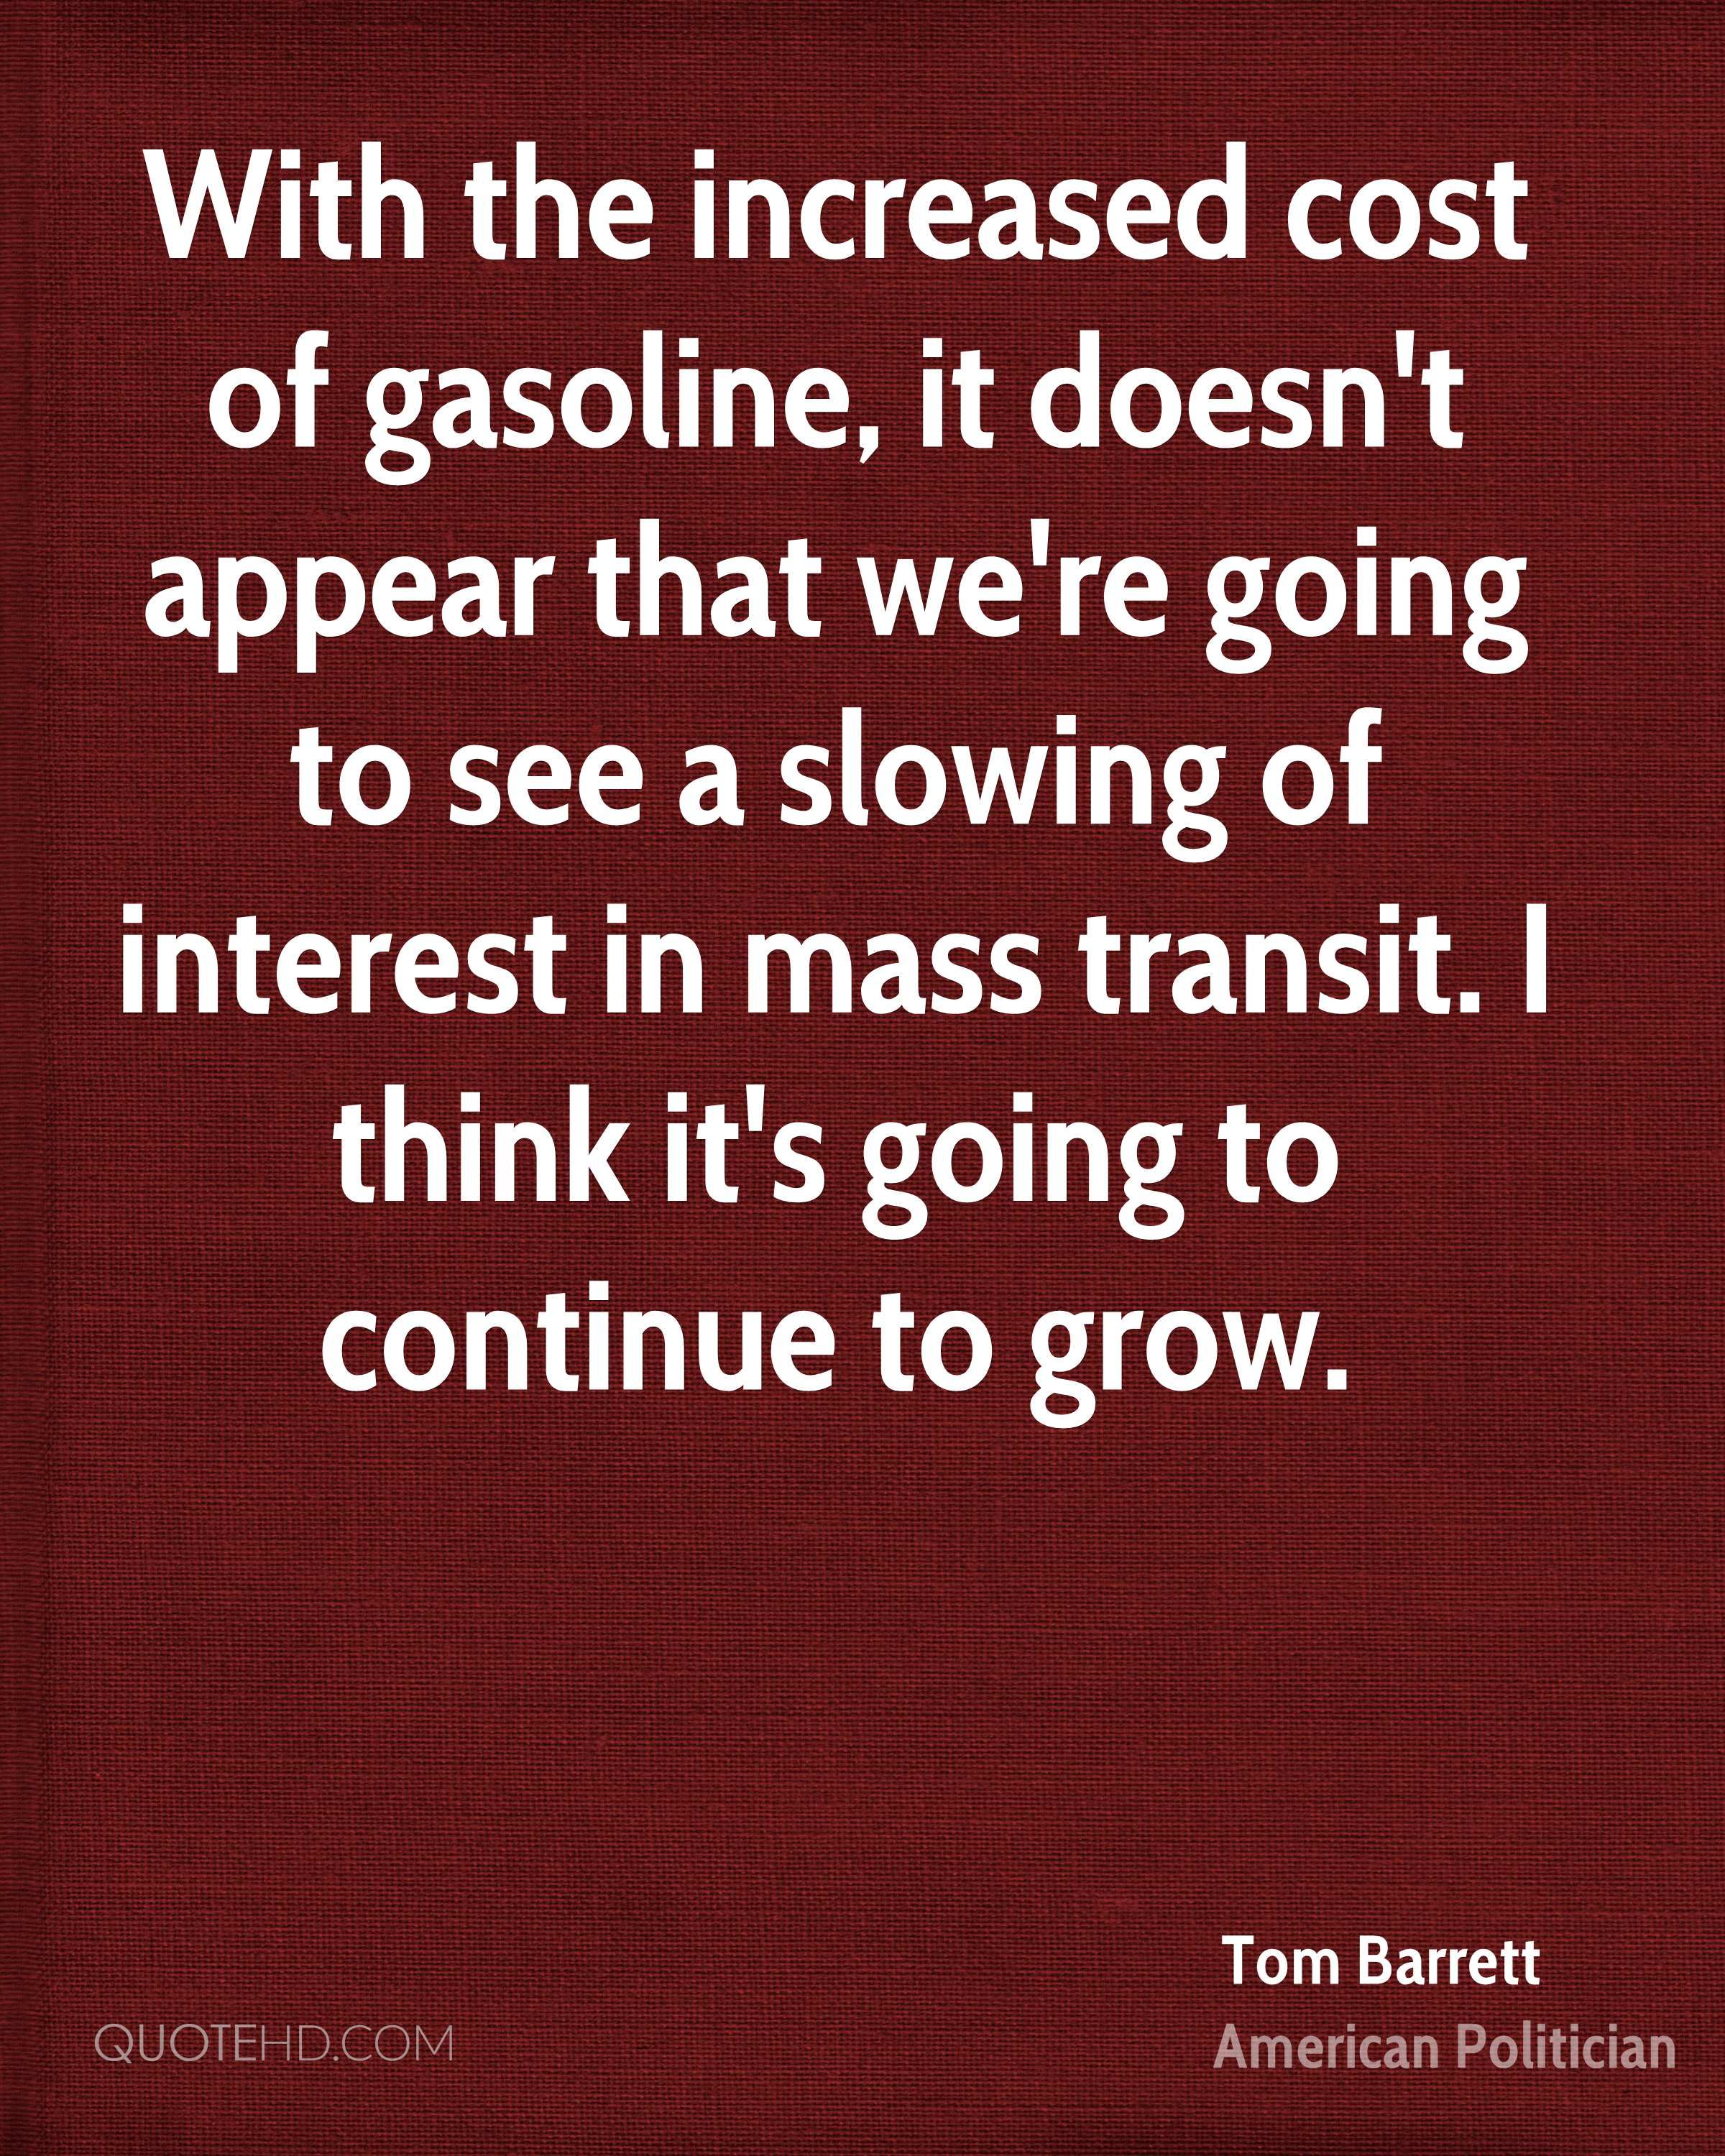 With the increased cost of gasoline, it doesn't appear that we're going to see a slowing of interest in mass transit. I think it's going to continue to grow.